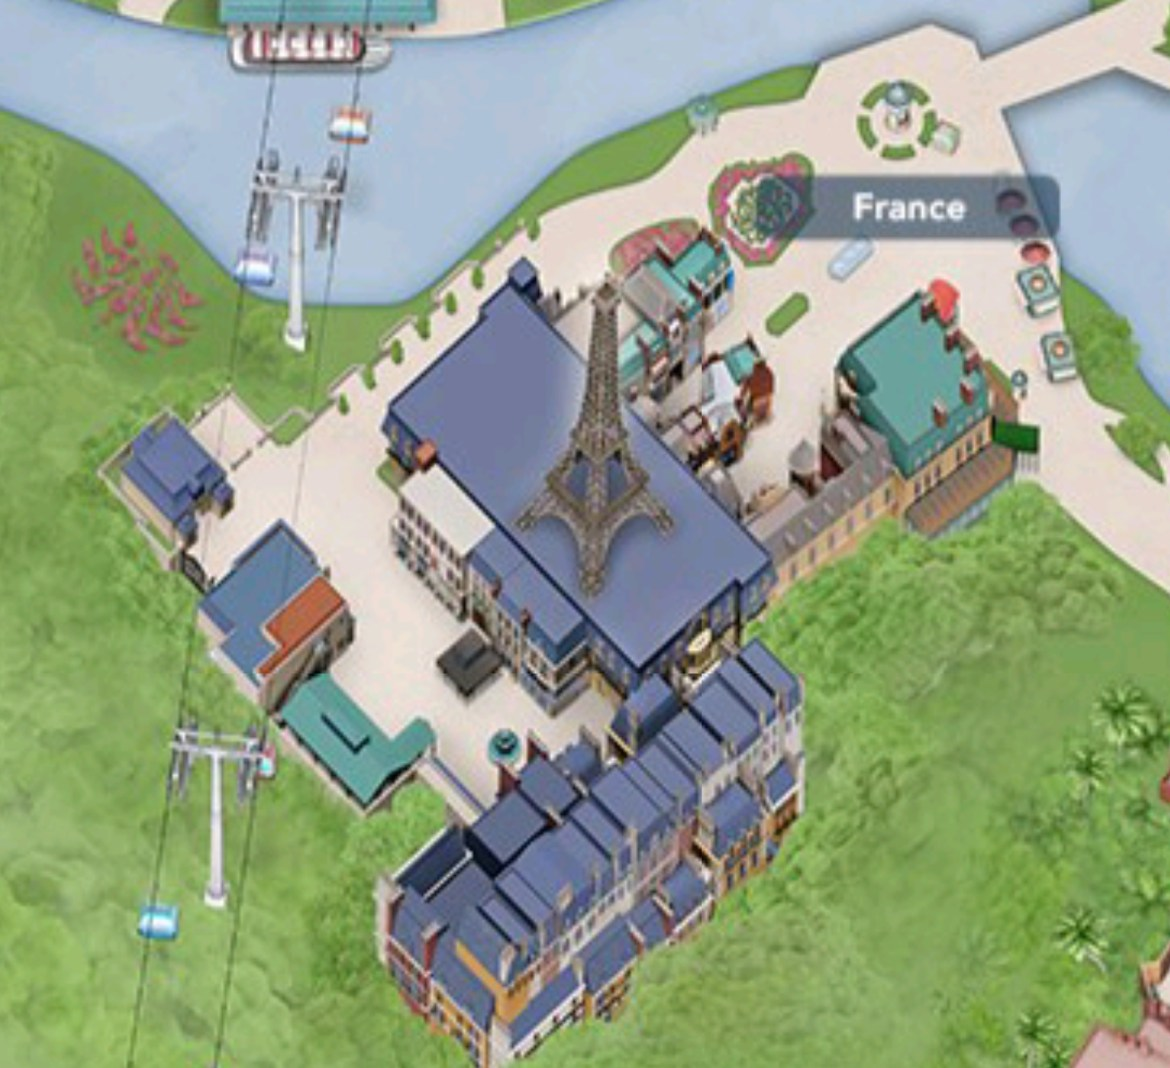 Epcot's France Pavilion expansion including Remy's Ratatouille Adventure added to My Disney Experience